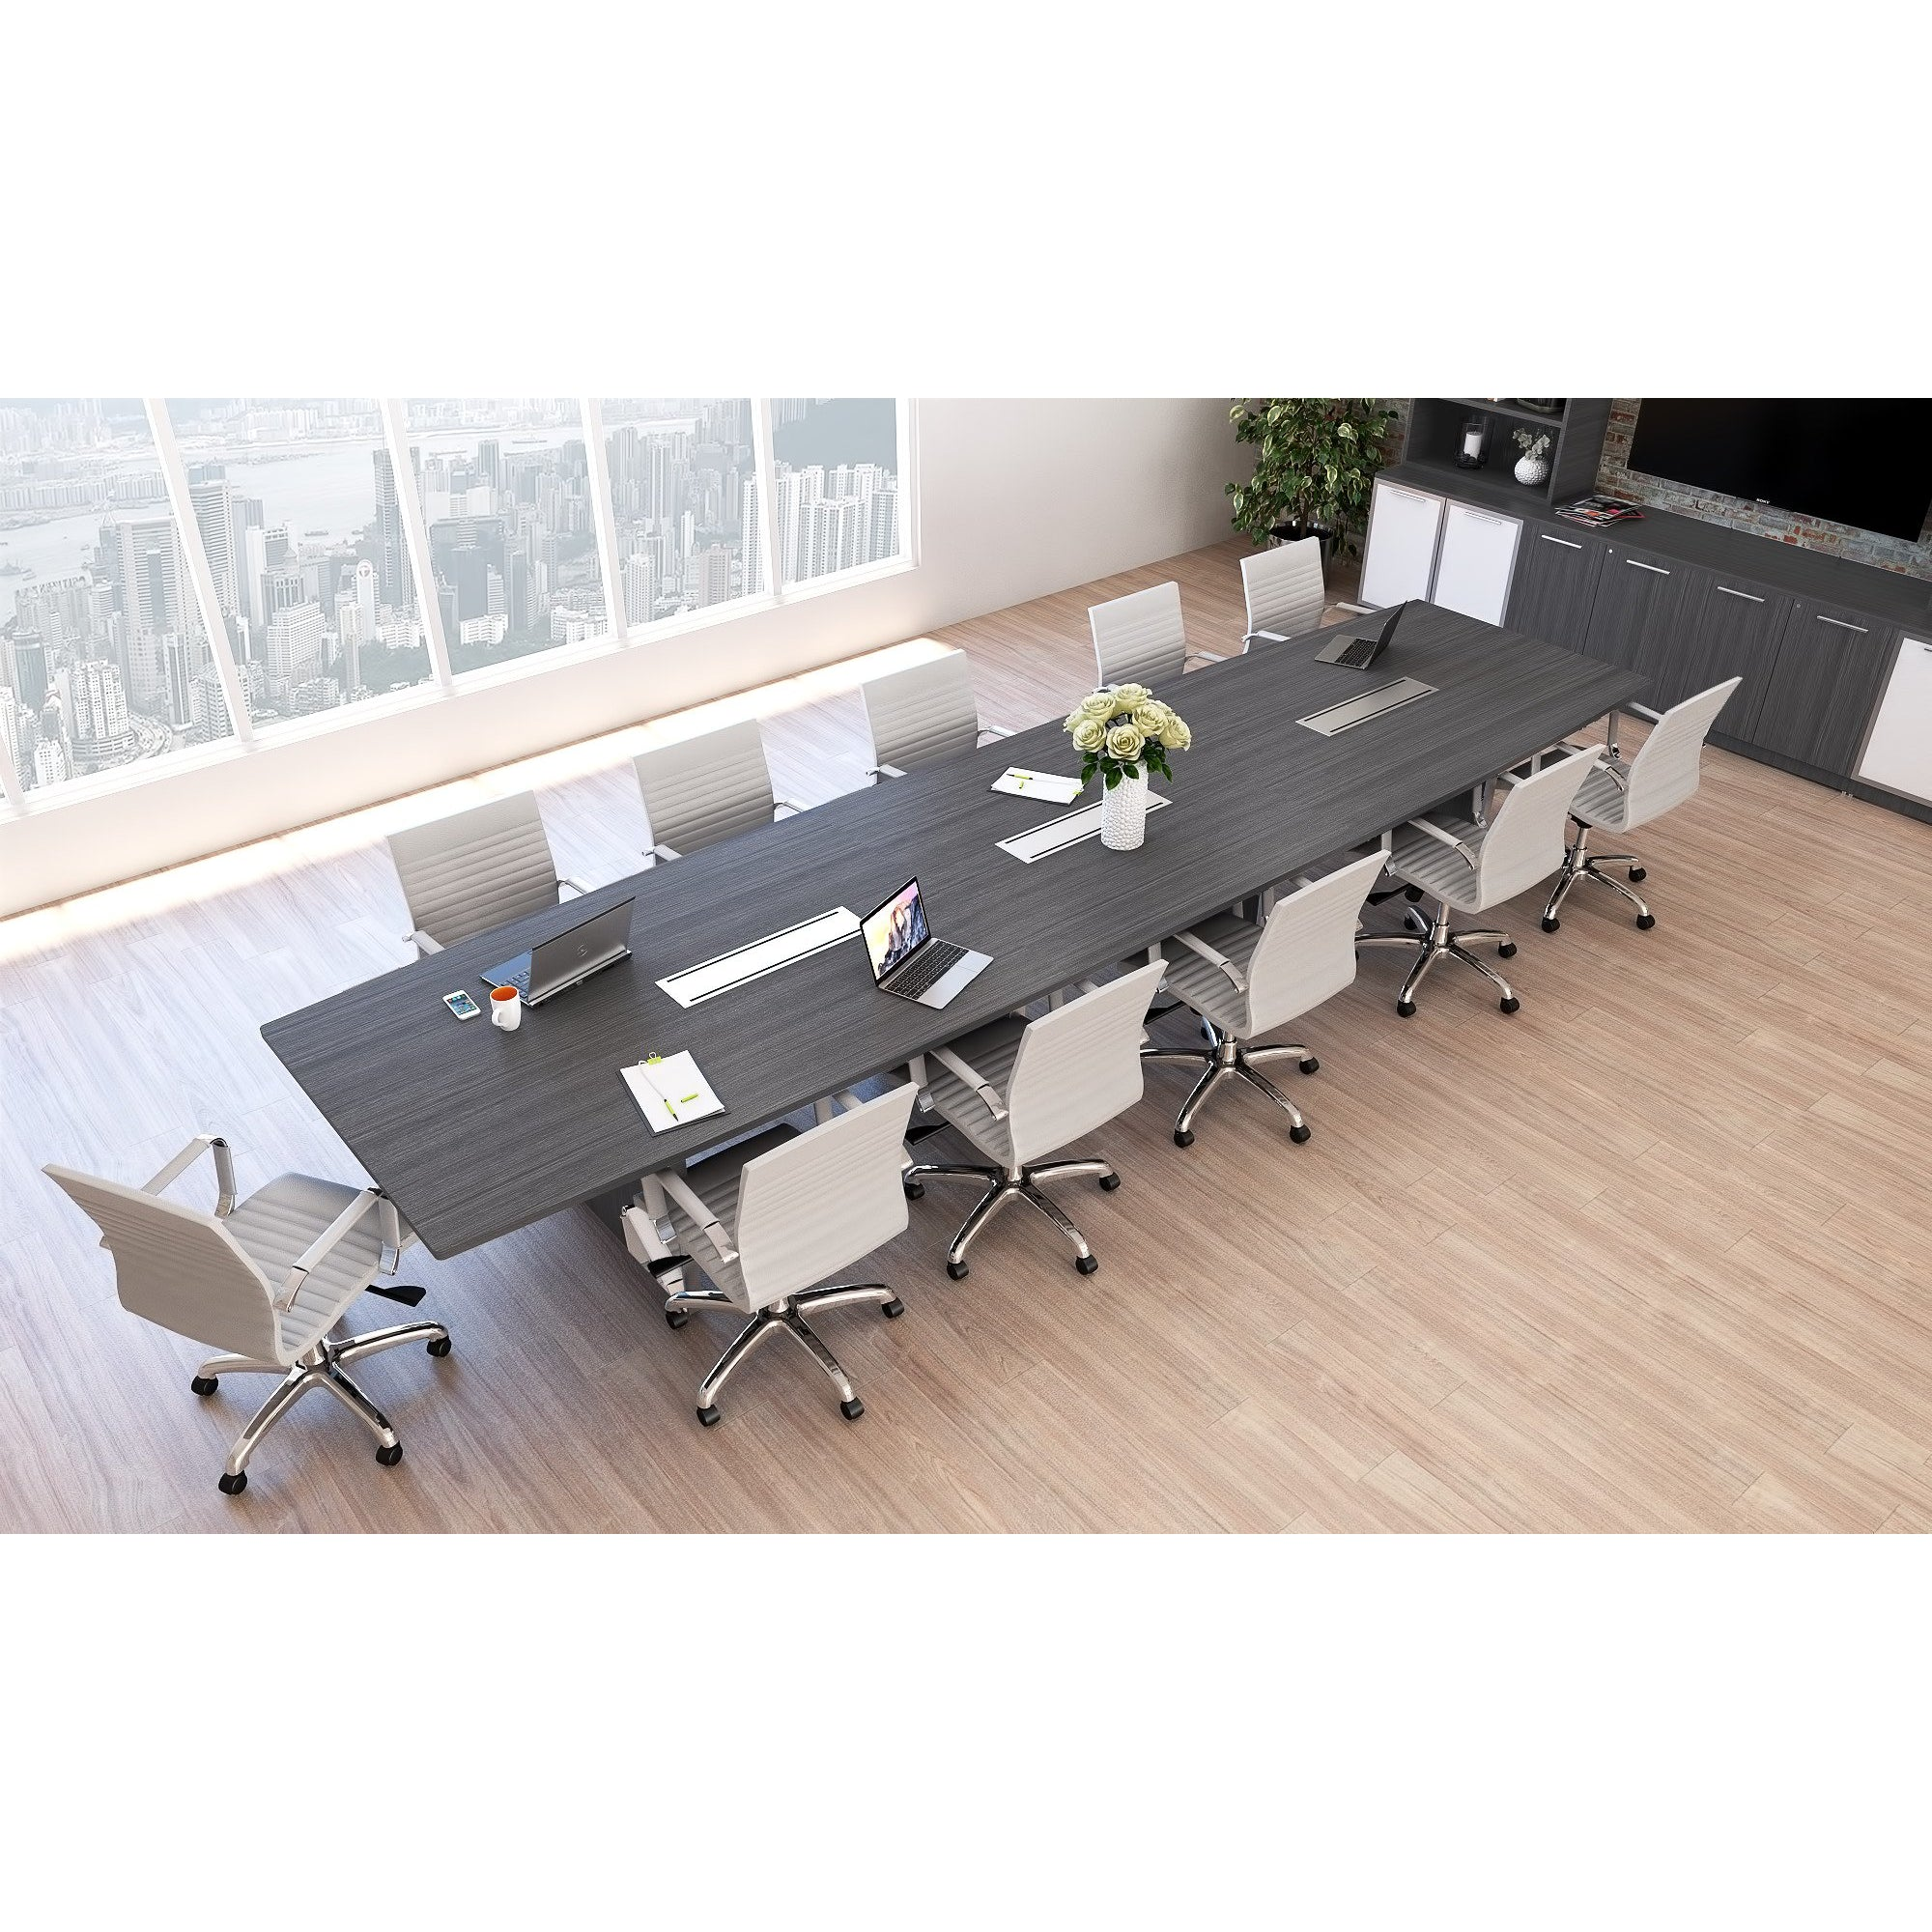 Picture of: Chiarezza Deluxe Conference Table 8 Ft 10 Ft Or 12 Ft Office Furniture 4 Sale